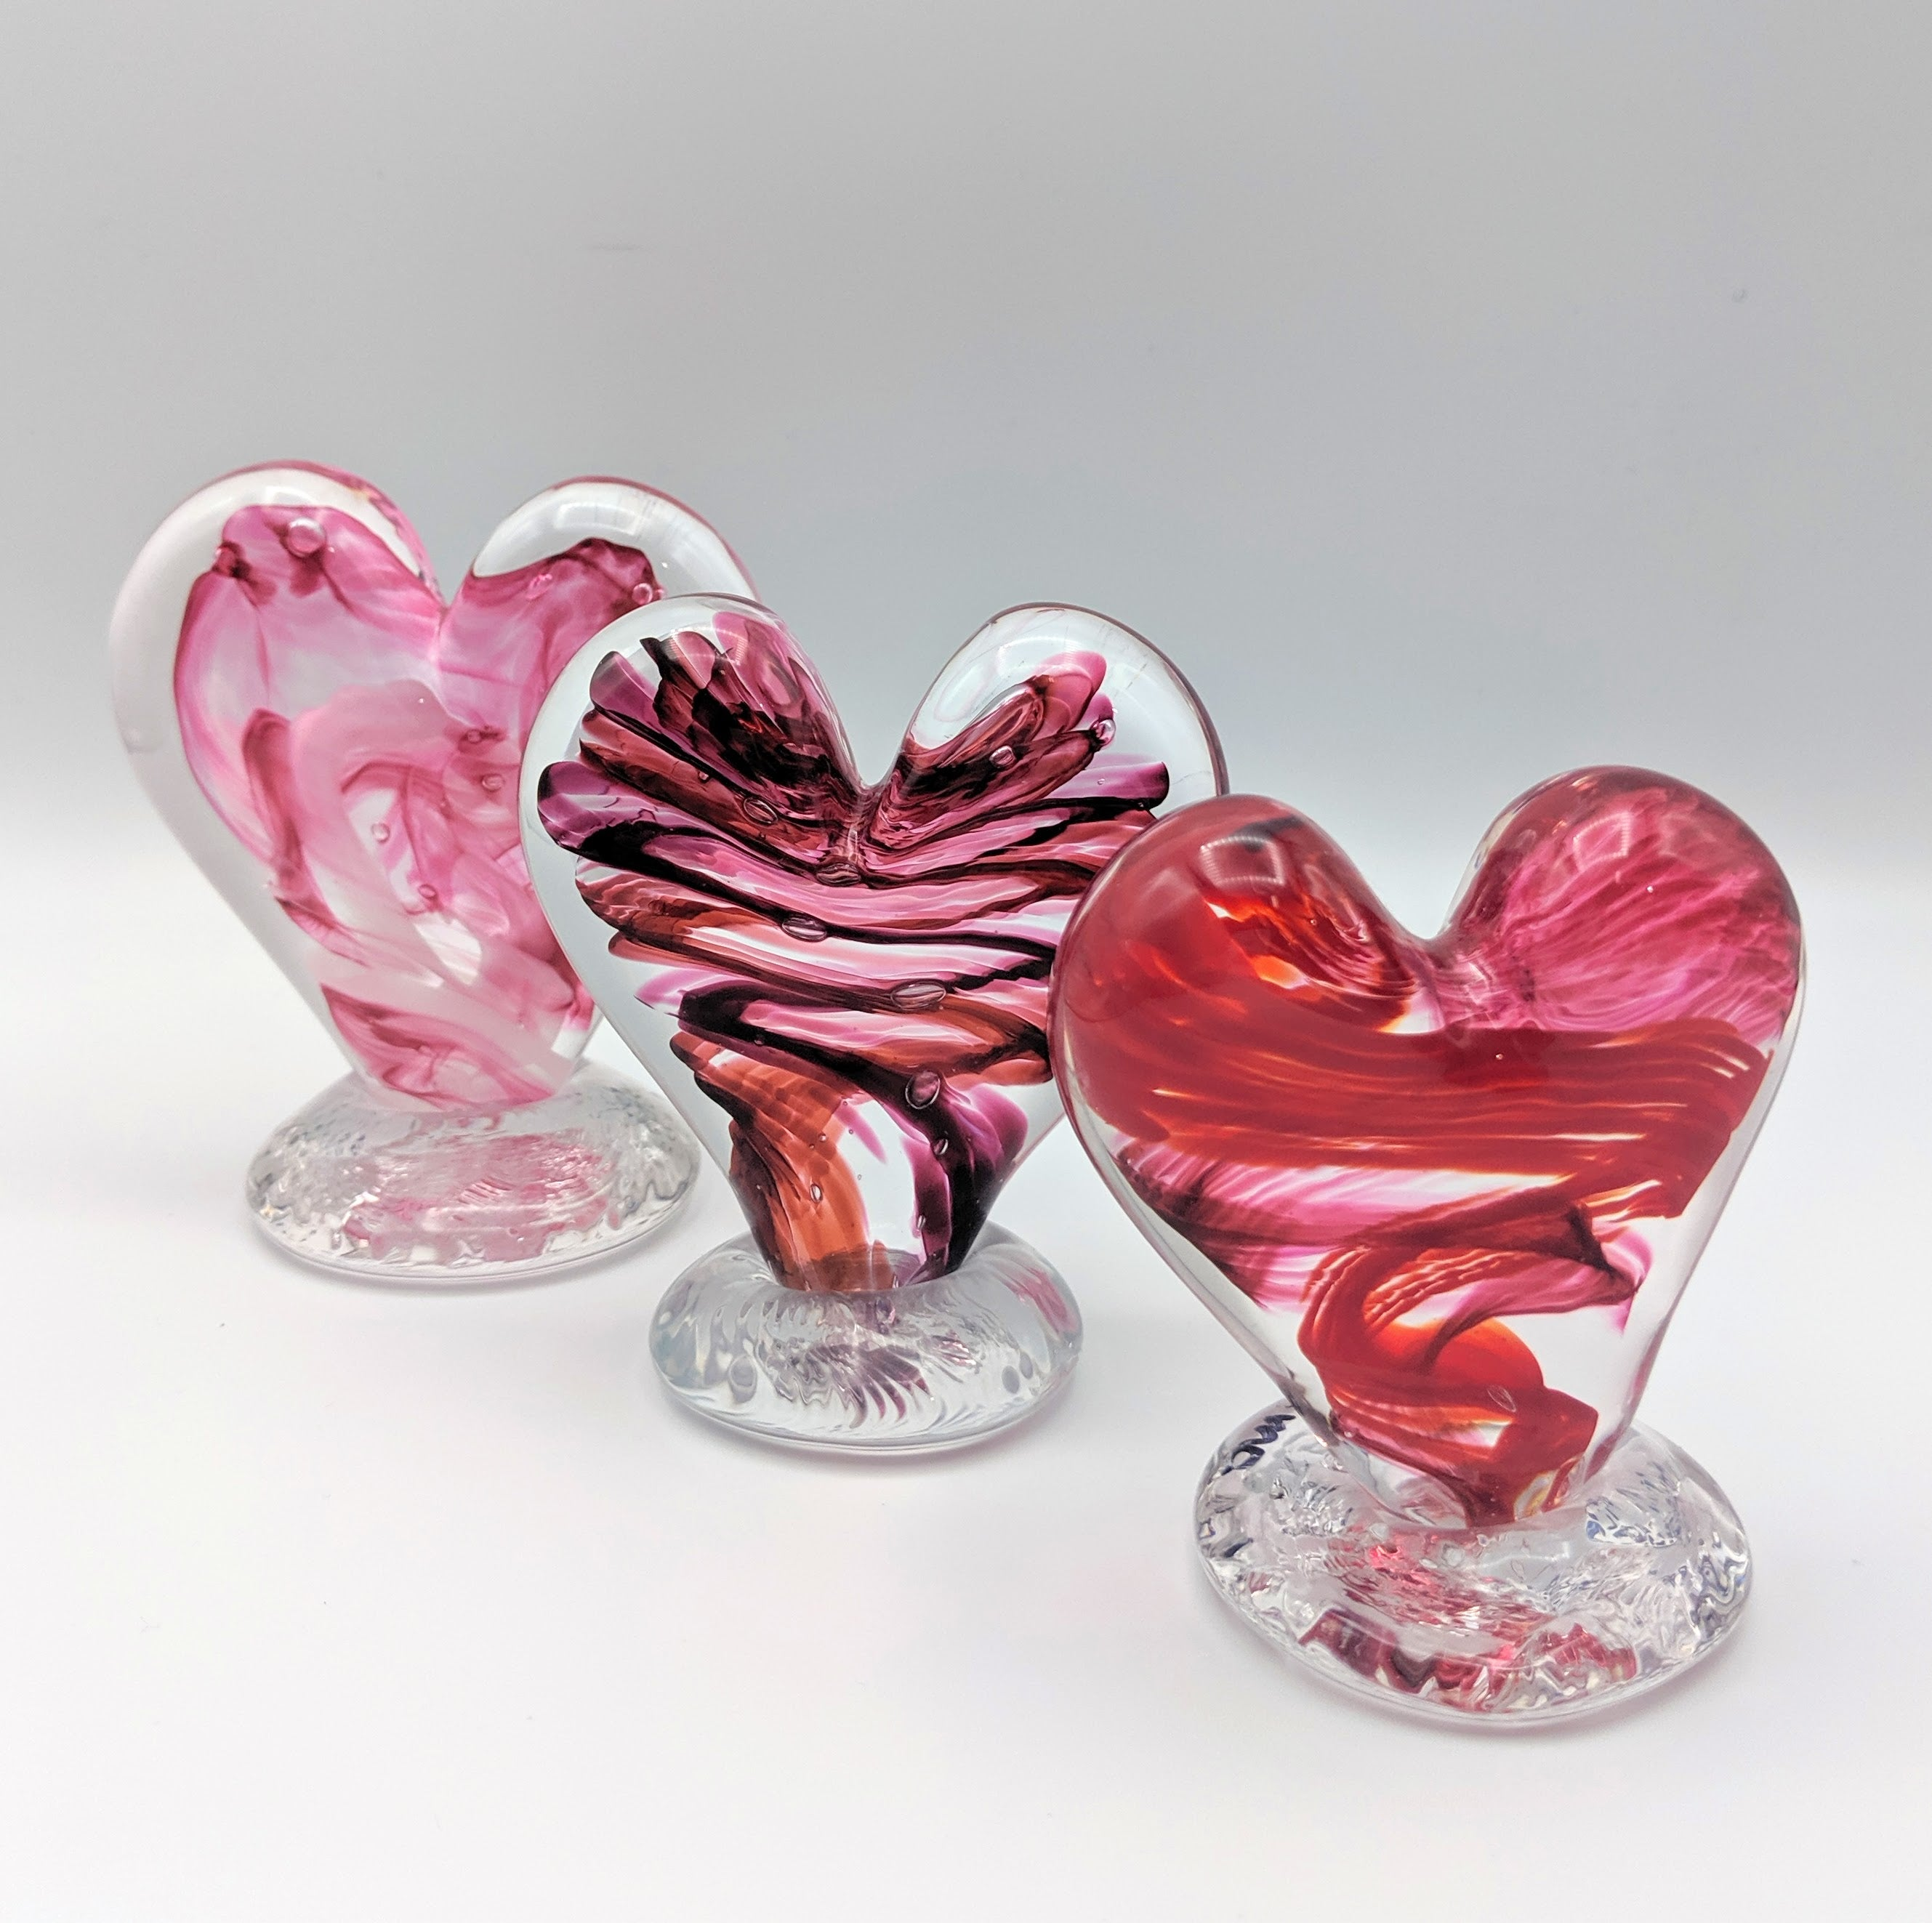 Make a Glass Heart </br>February 1, 2020